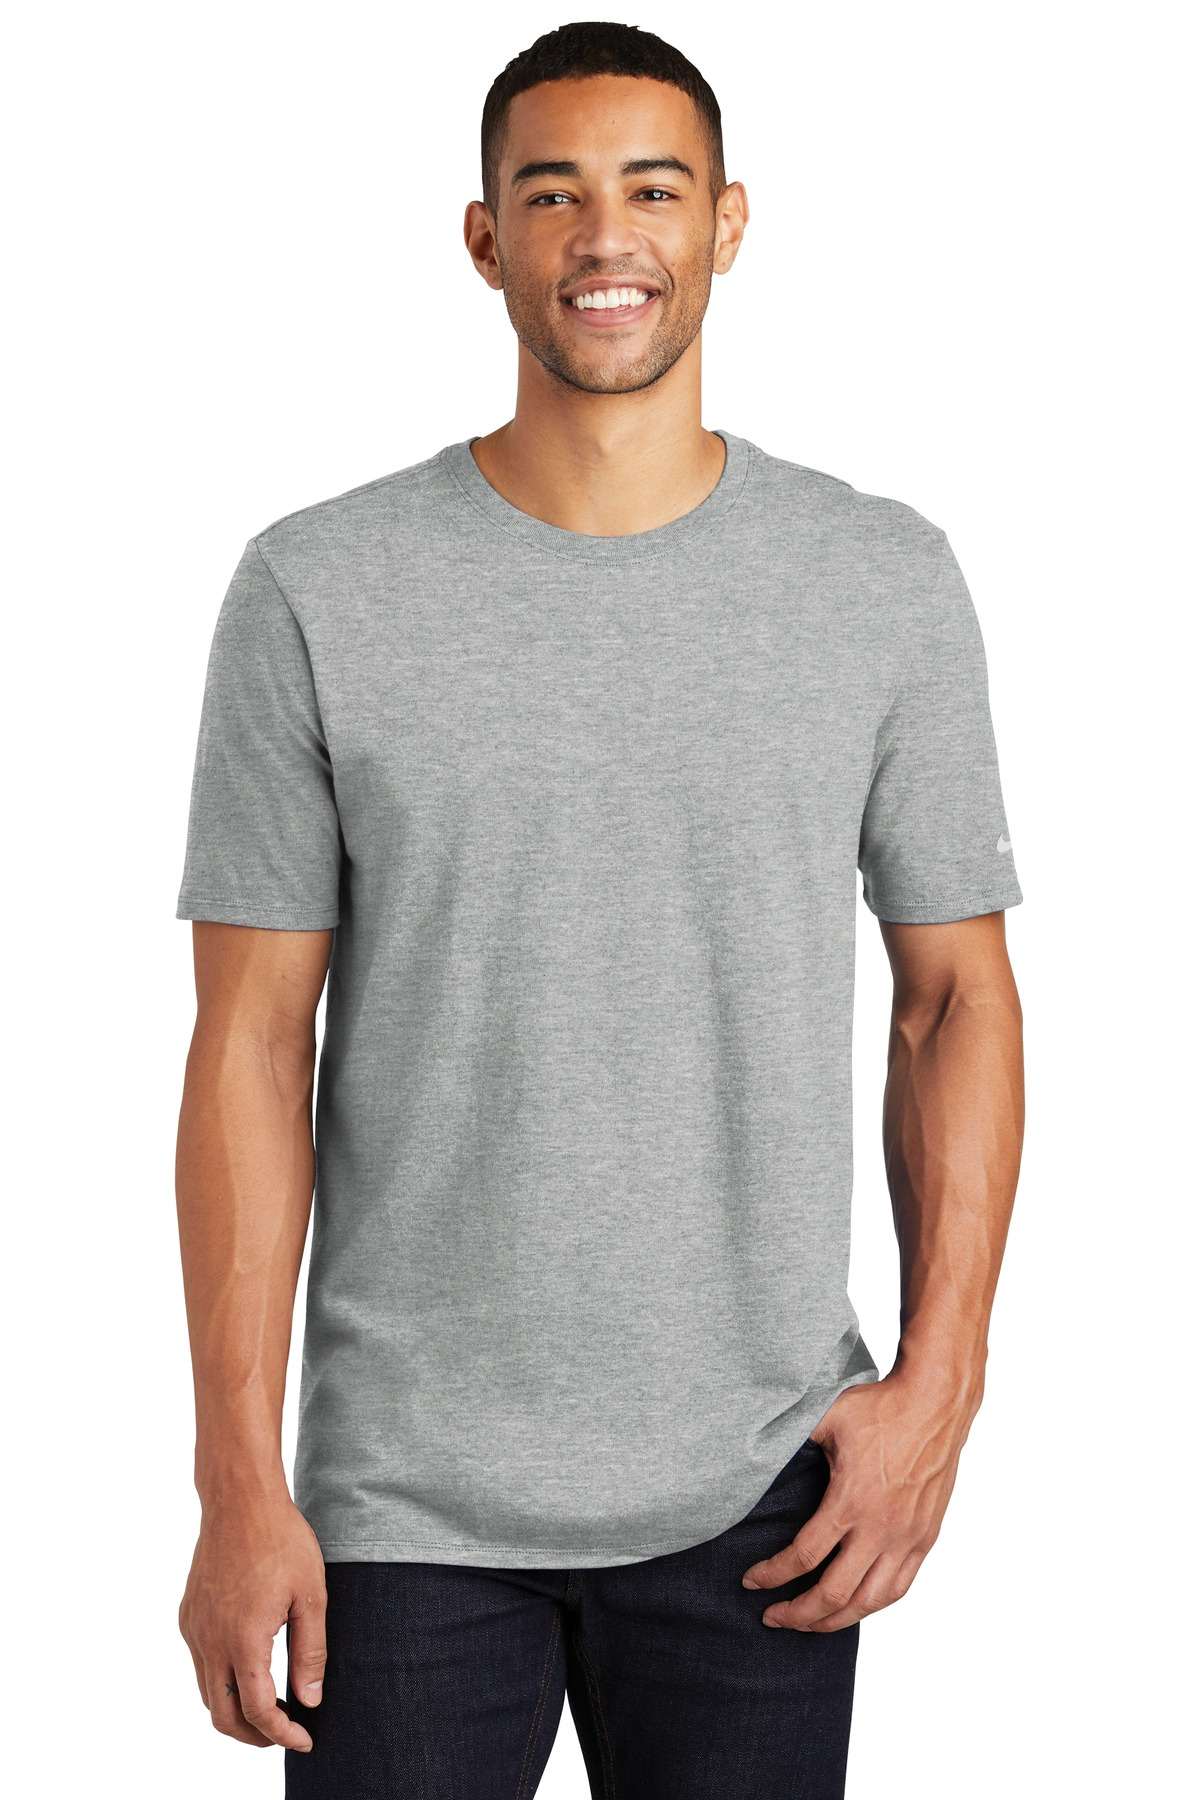 Nike Core Cotton Tee. NKBQ5233 - Dark Grey Heather